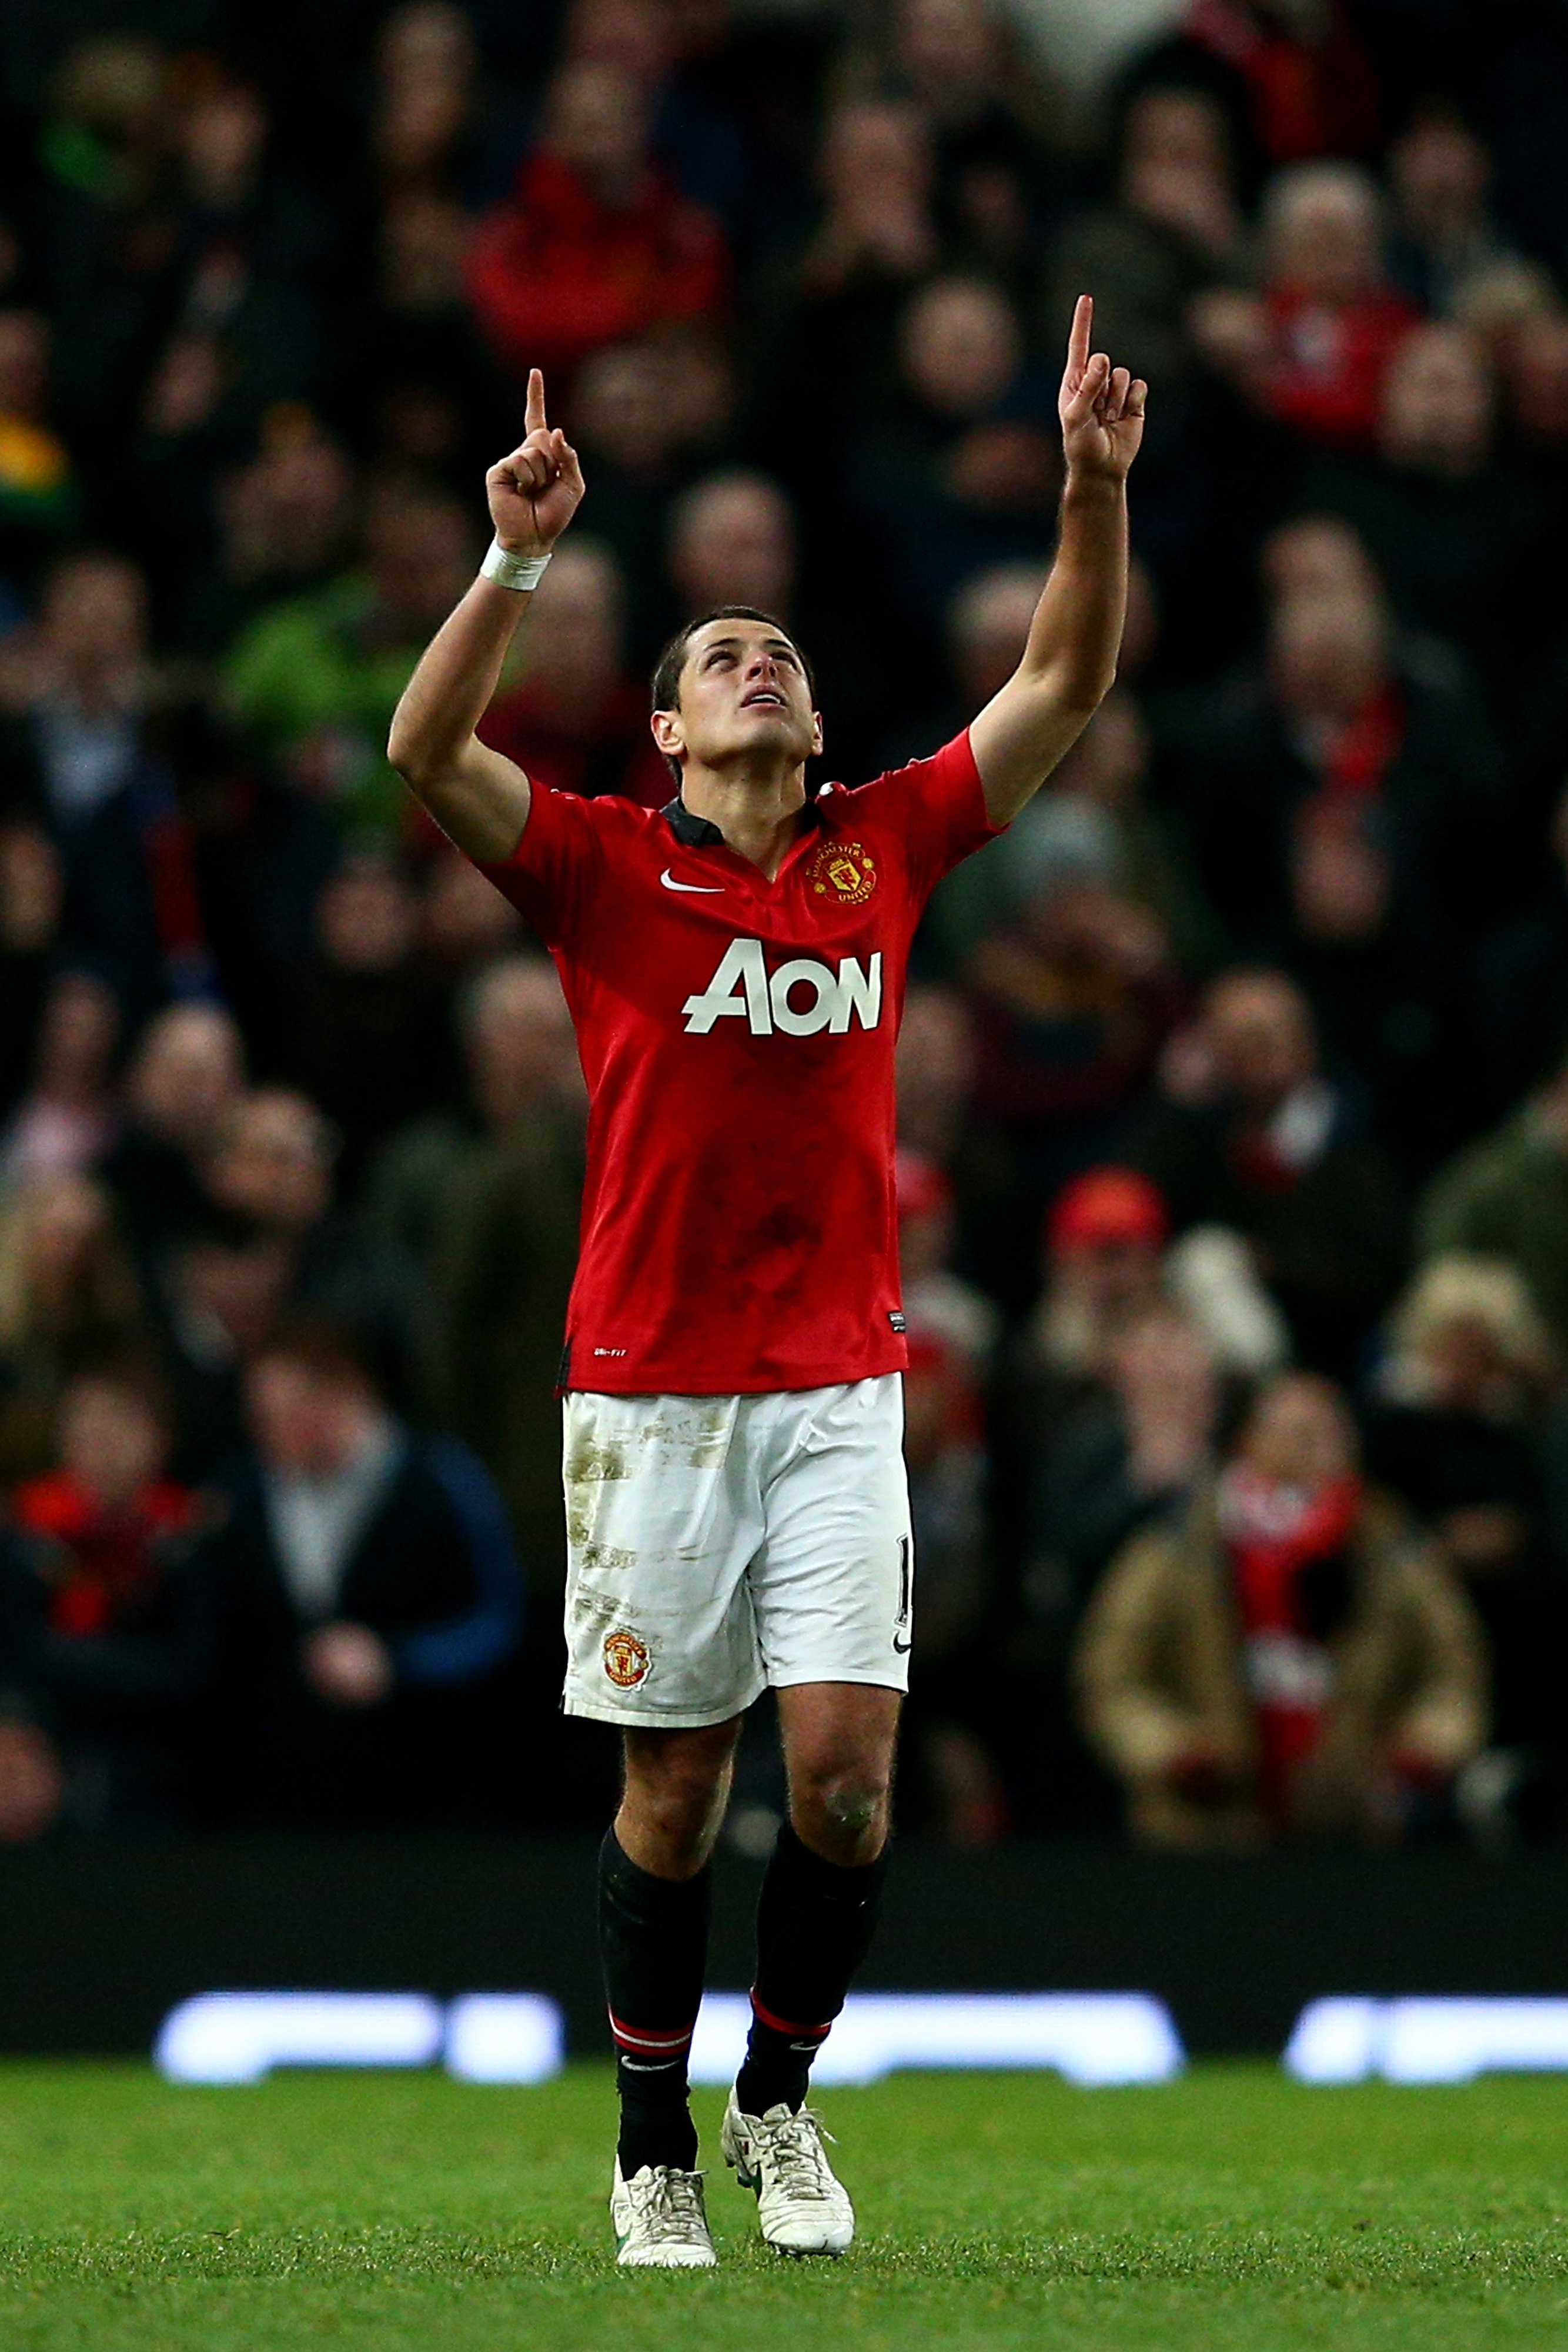 Real Madrid sign Javier Hernandez from Manchester United